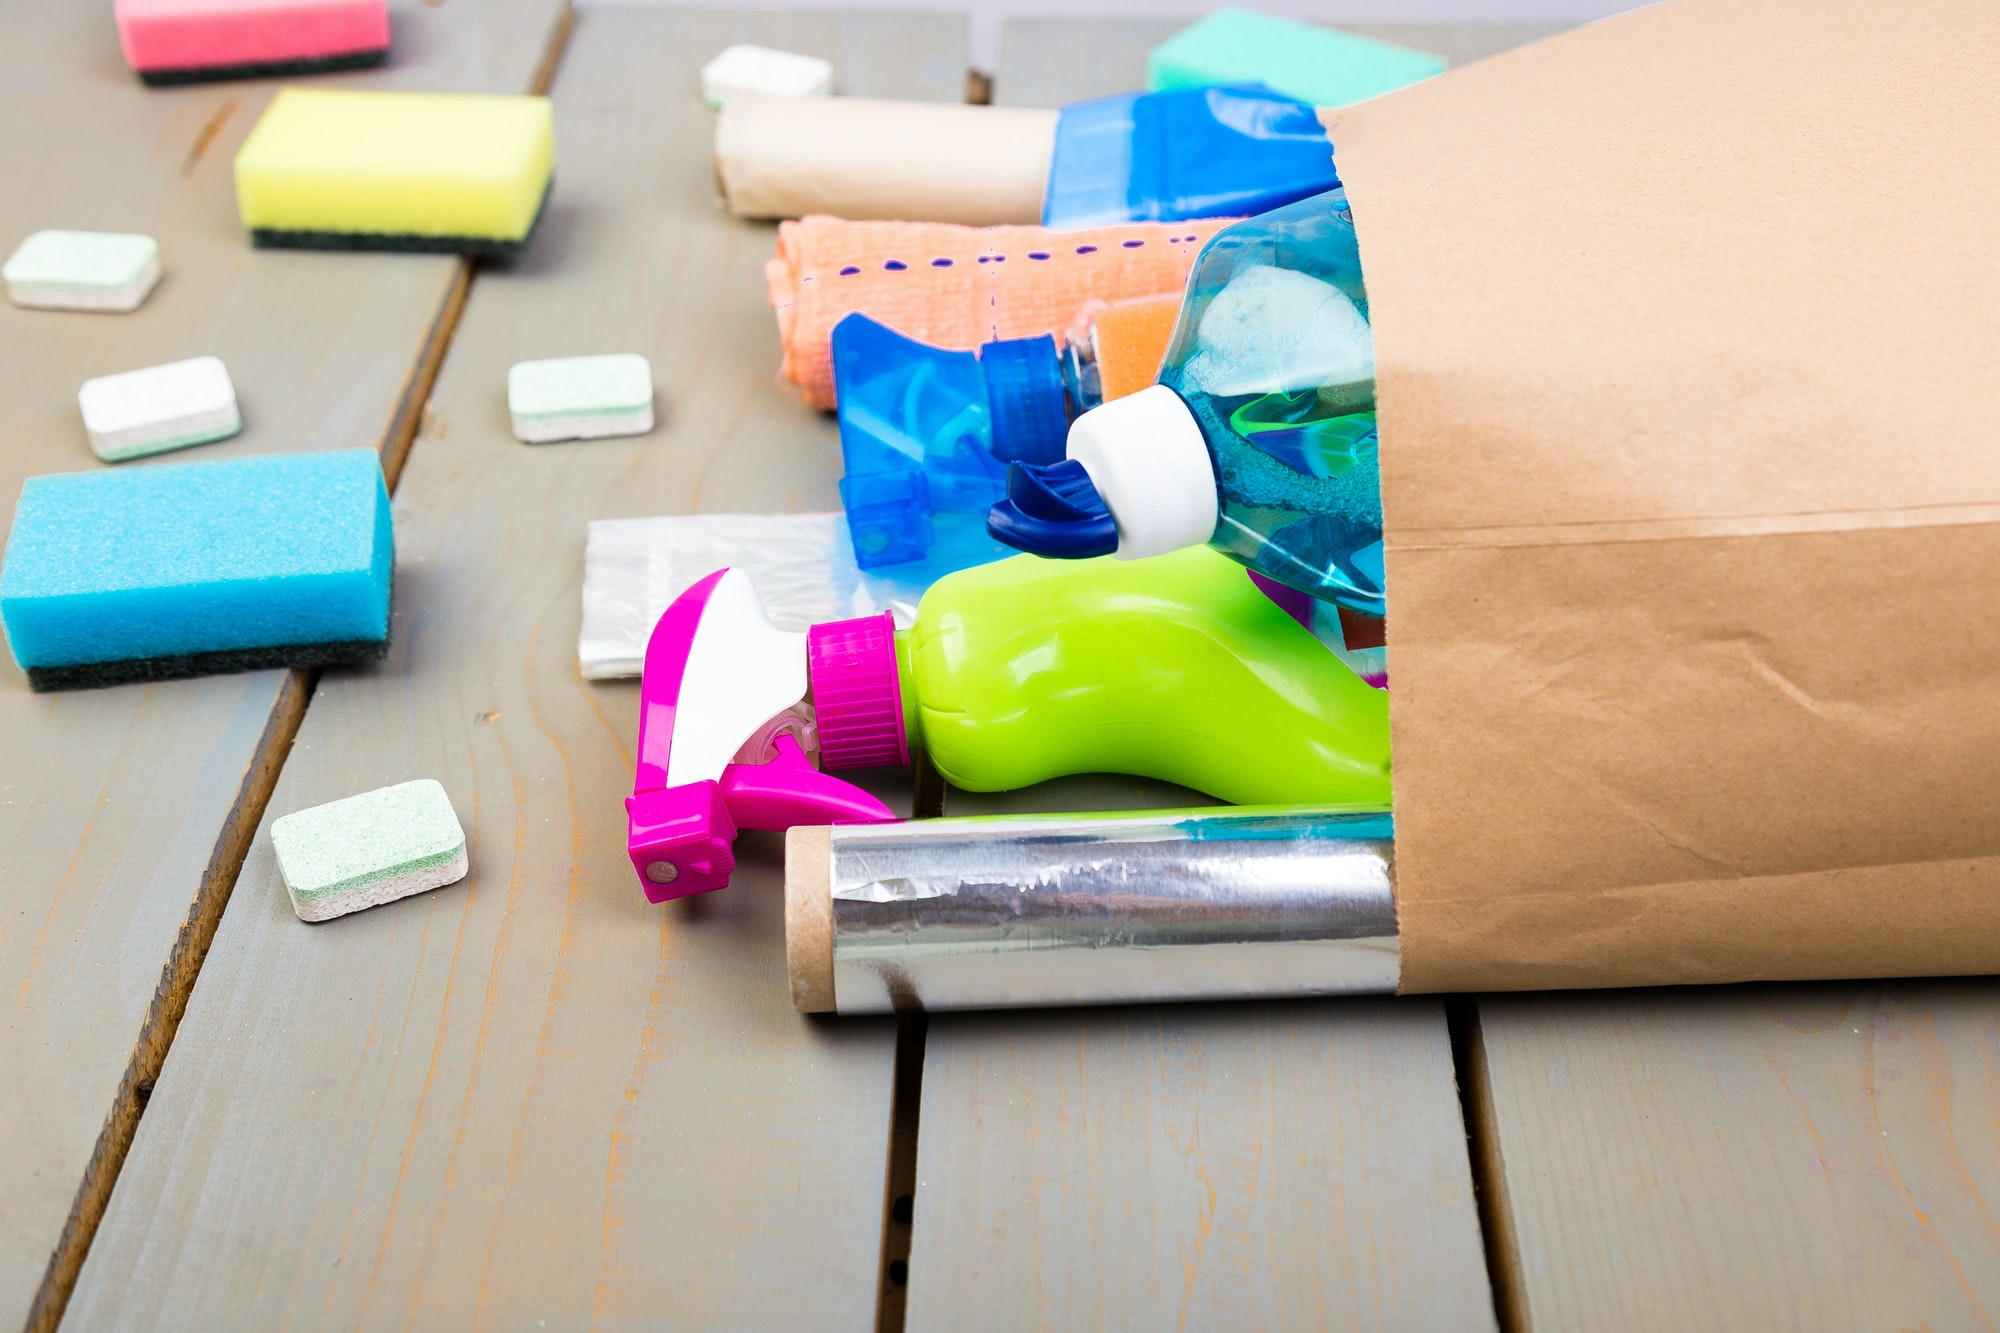 Full paper bag of different house cleaning product